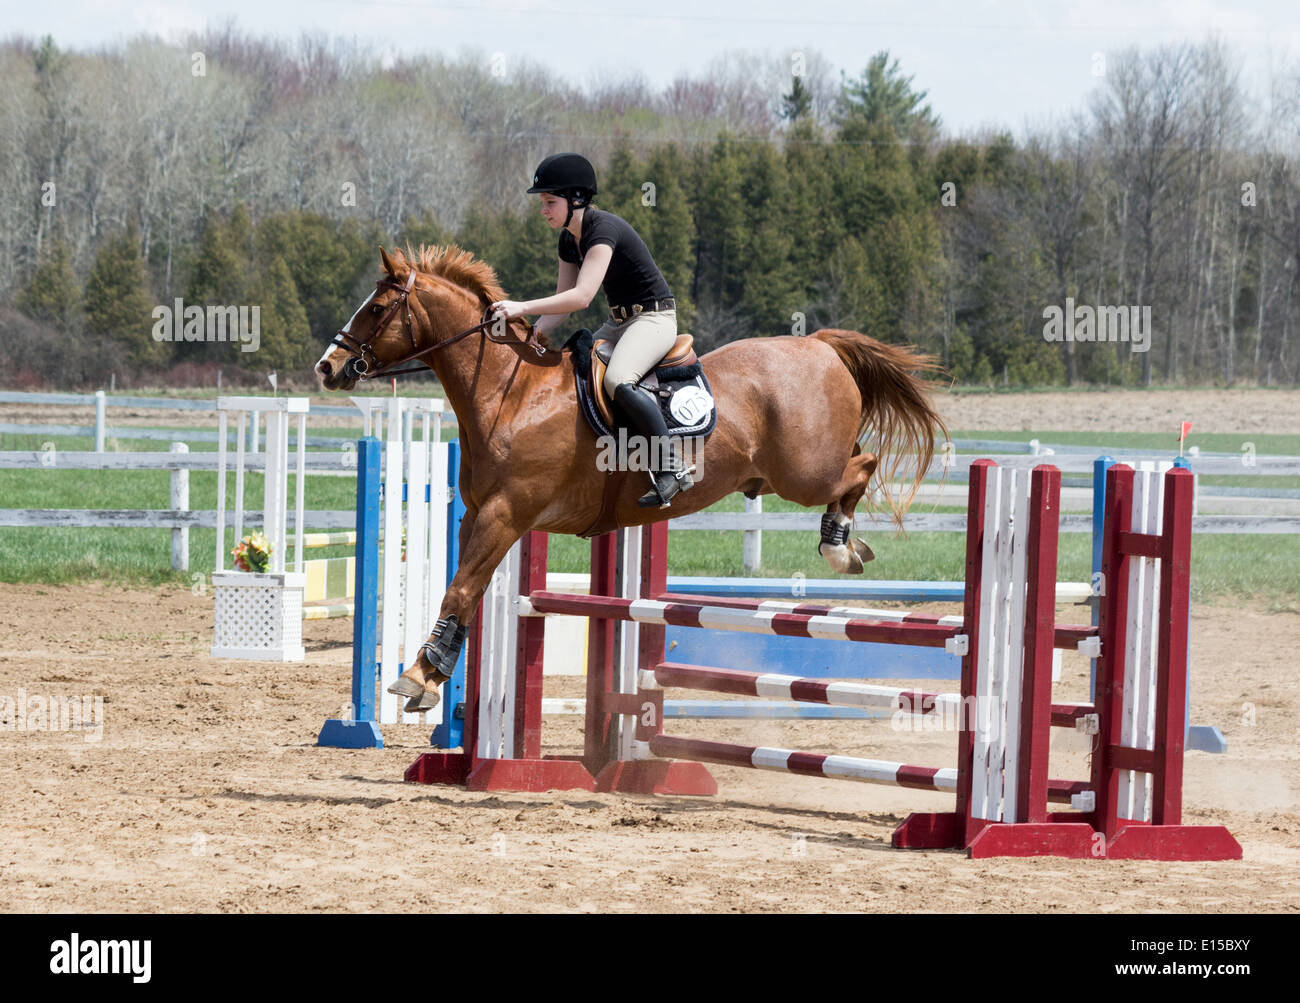 Teenage girl rider on chestnut horse jumping over oxer ... - photo#40